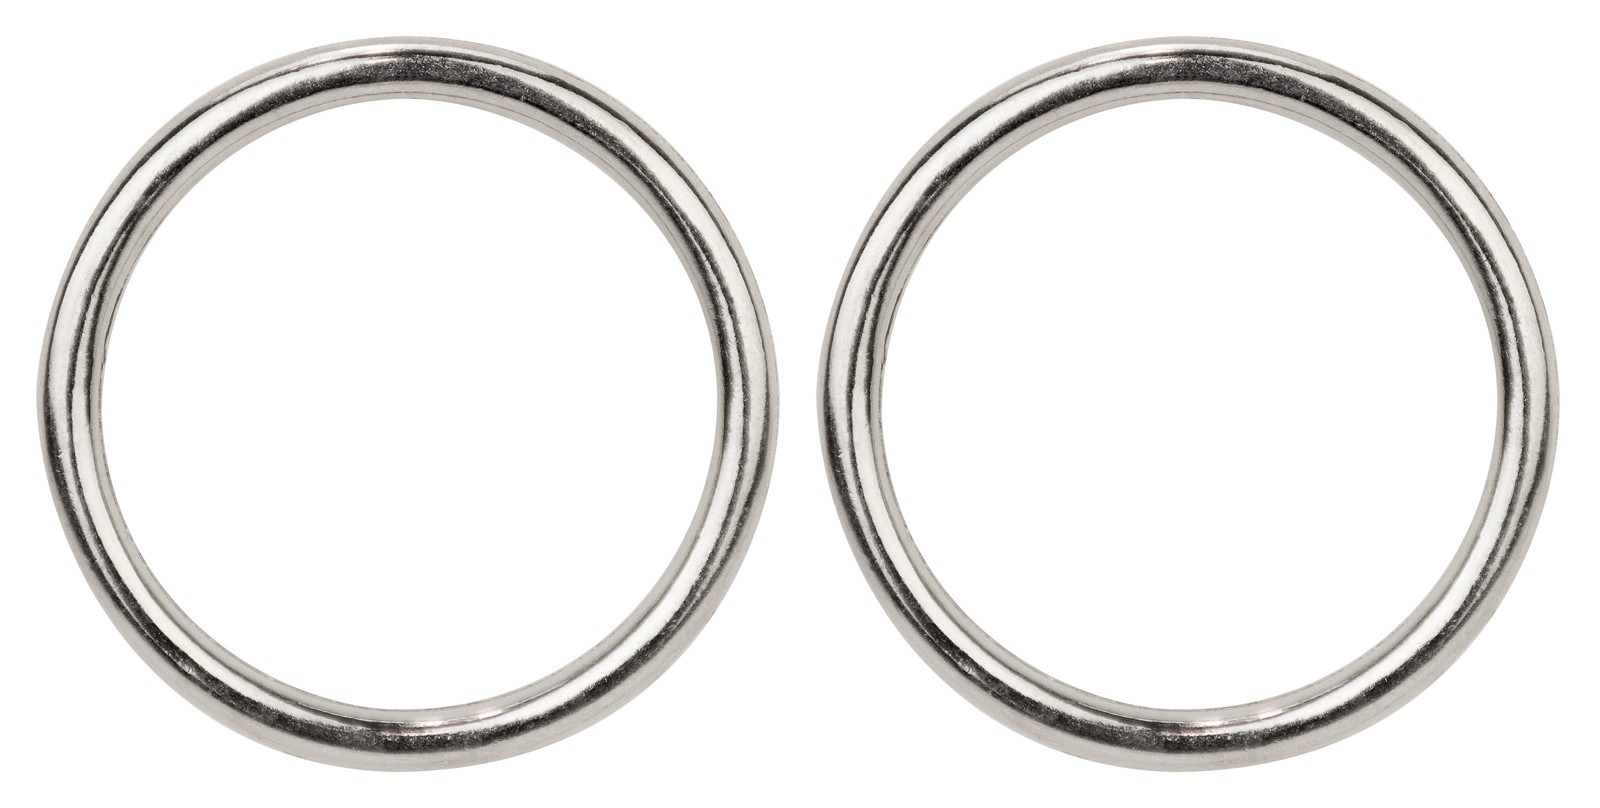 Buy 1 1/2 Inch Welded Lite O-Rings Closeout Online